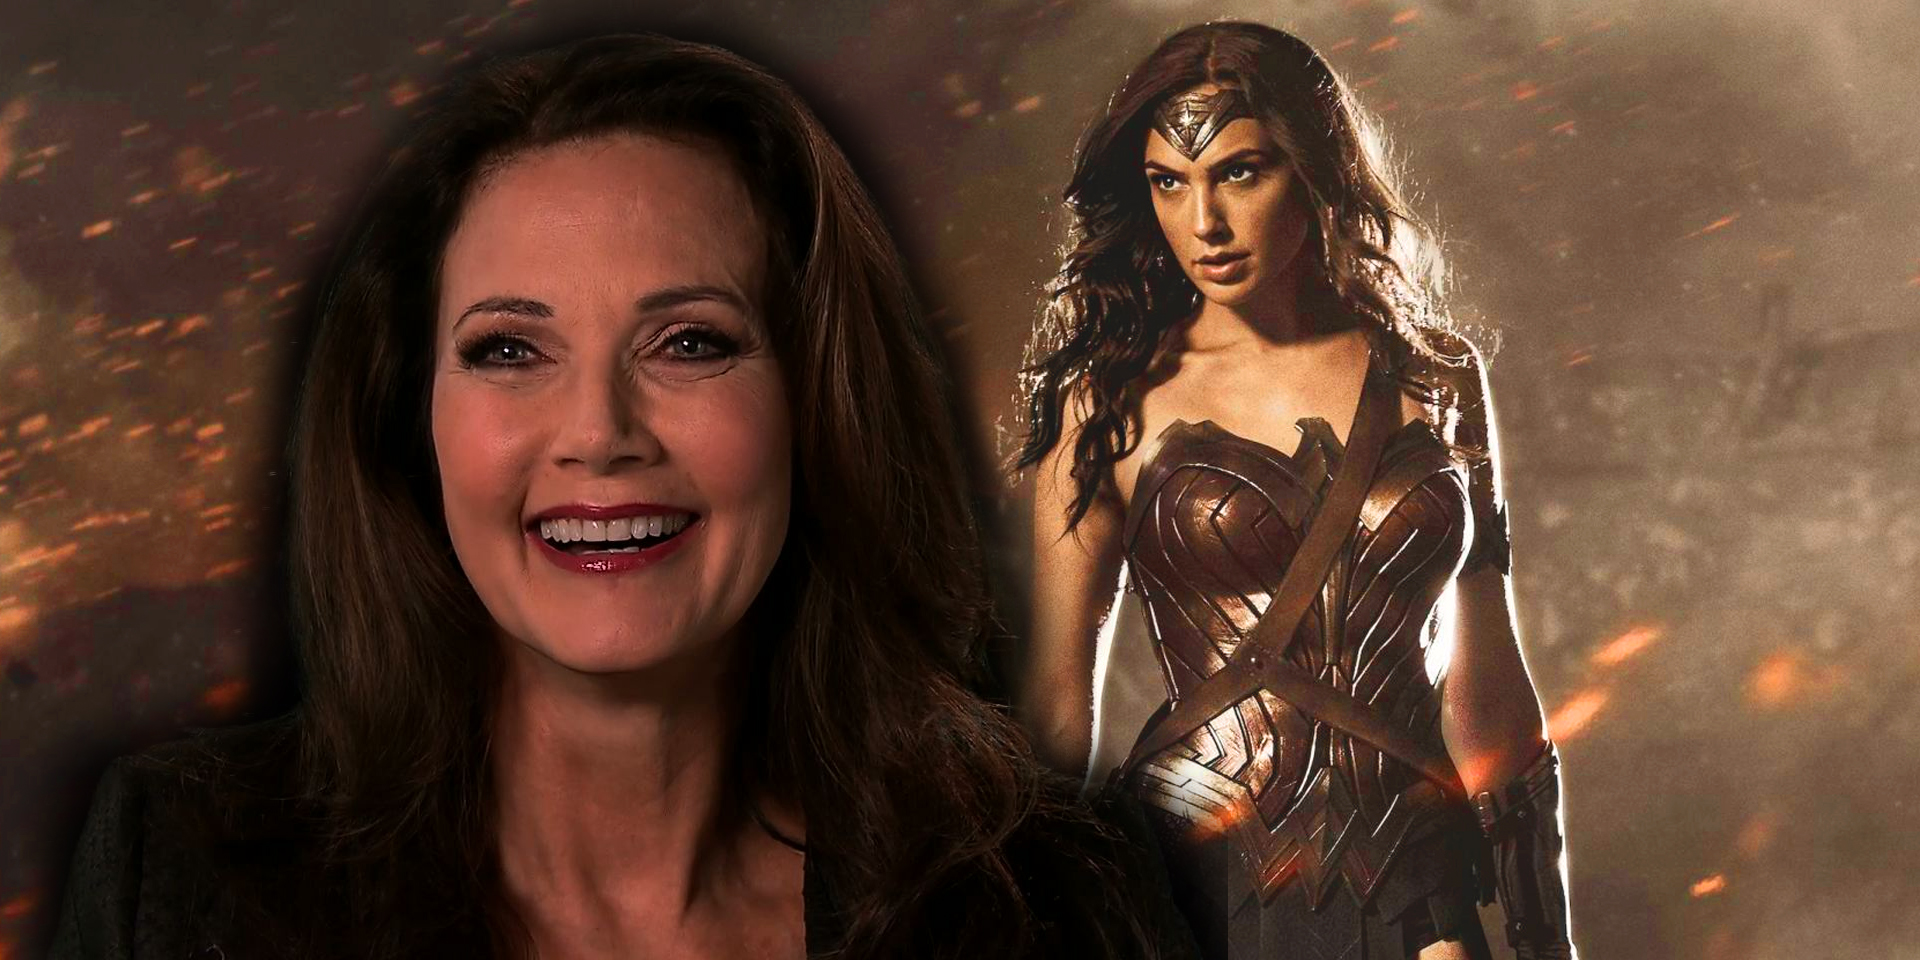 Lynda Carter headshot superimposed over an image of Gal Gadot as Wonder Woman